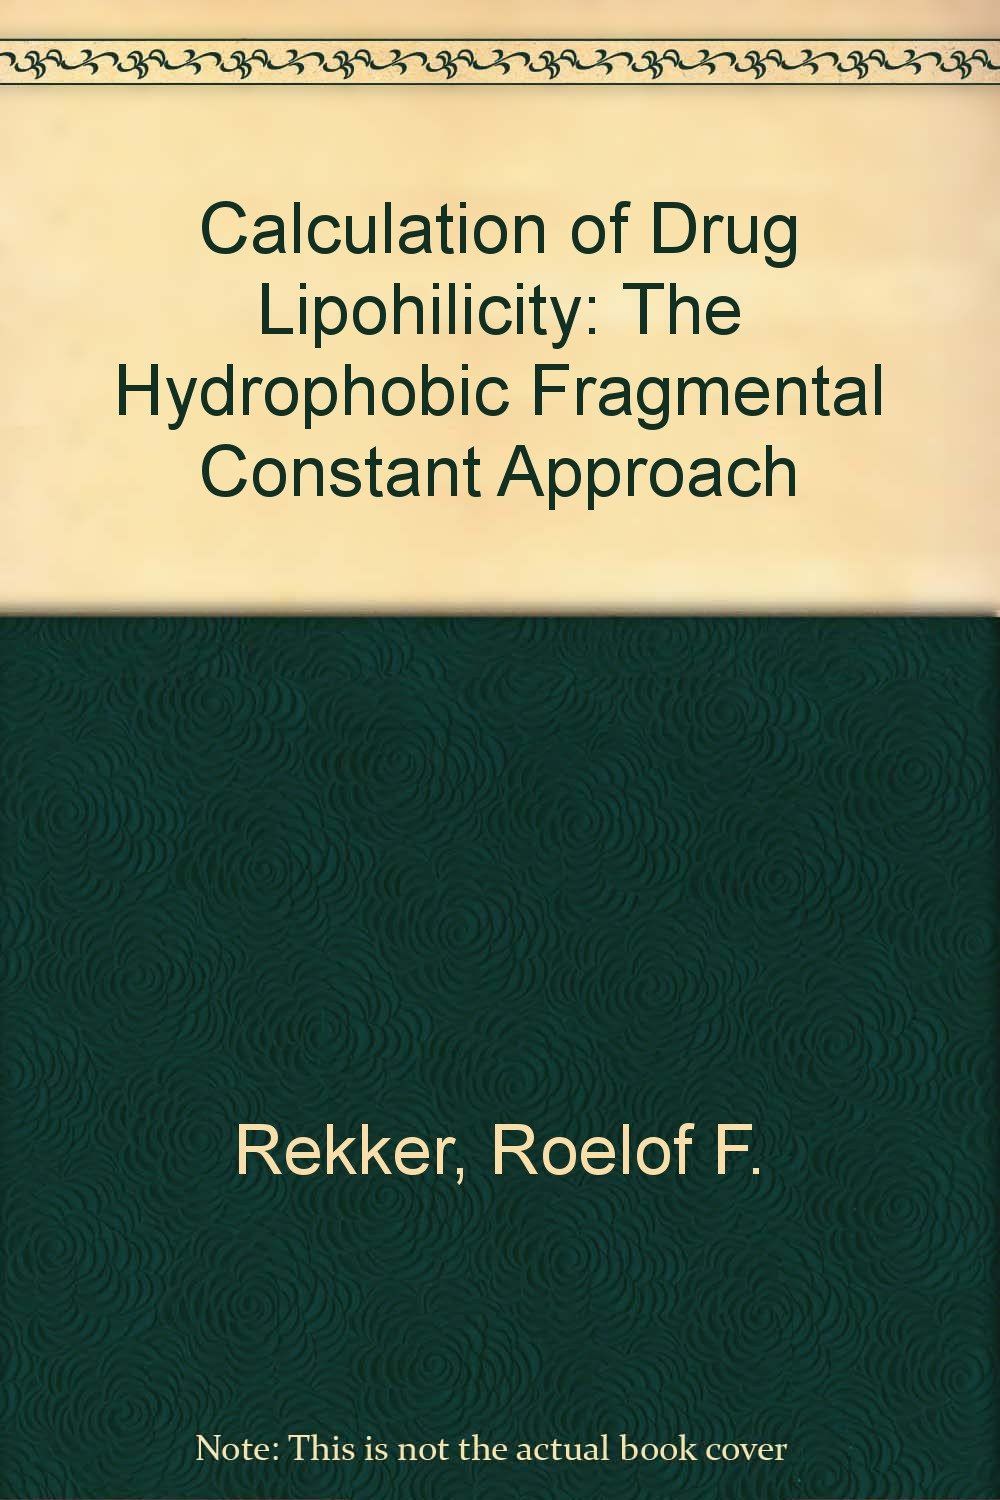 Calculation of Drug Lipohilicity: The Hydrophobic Fragmental